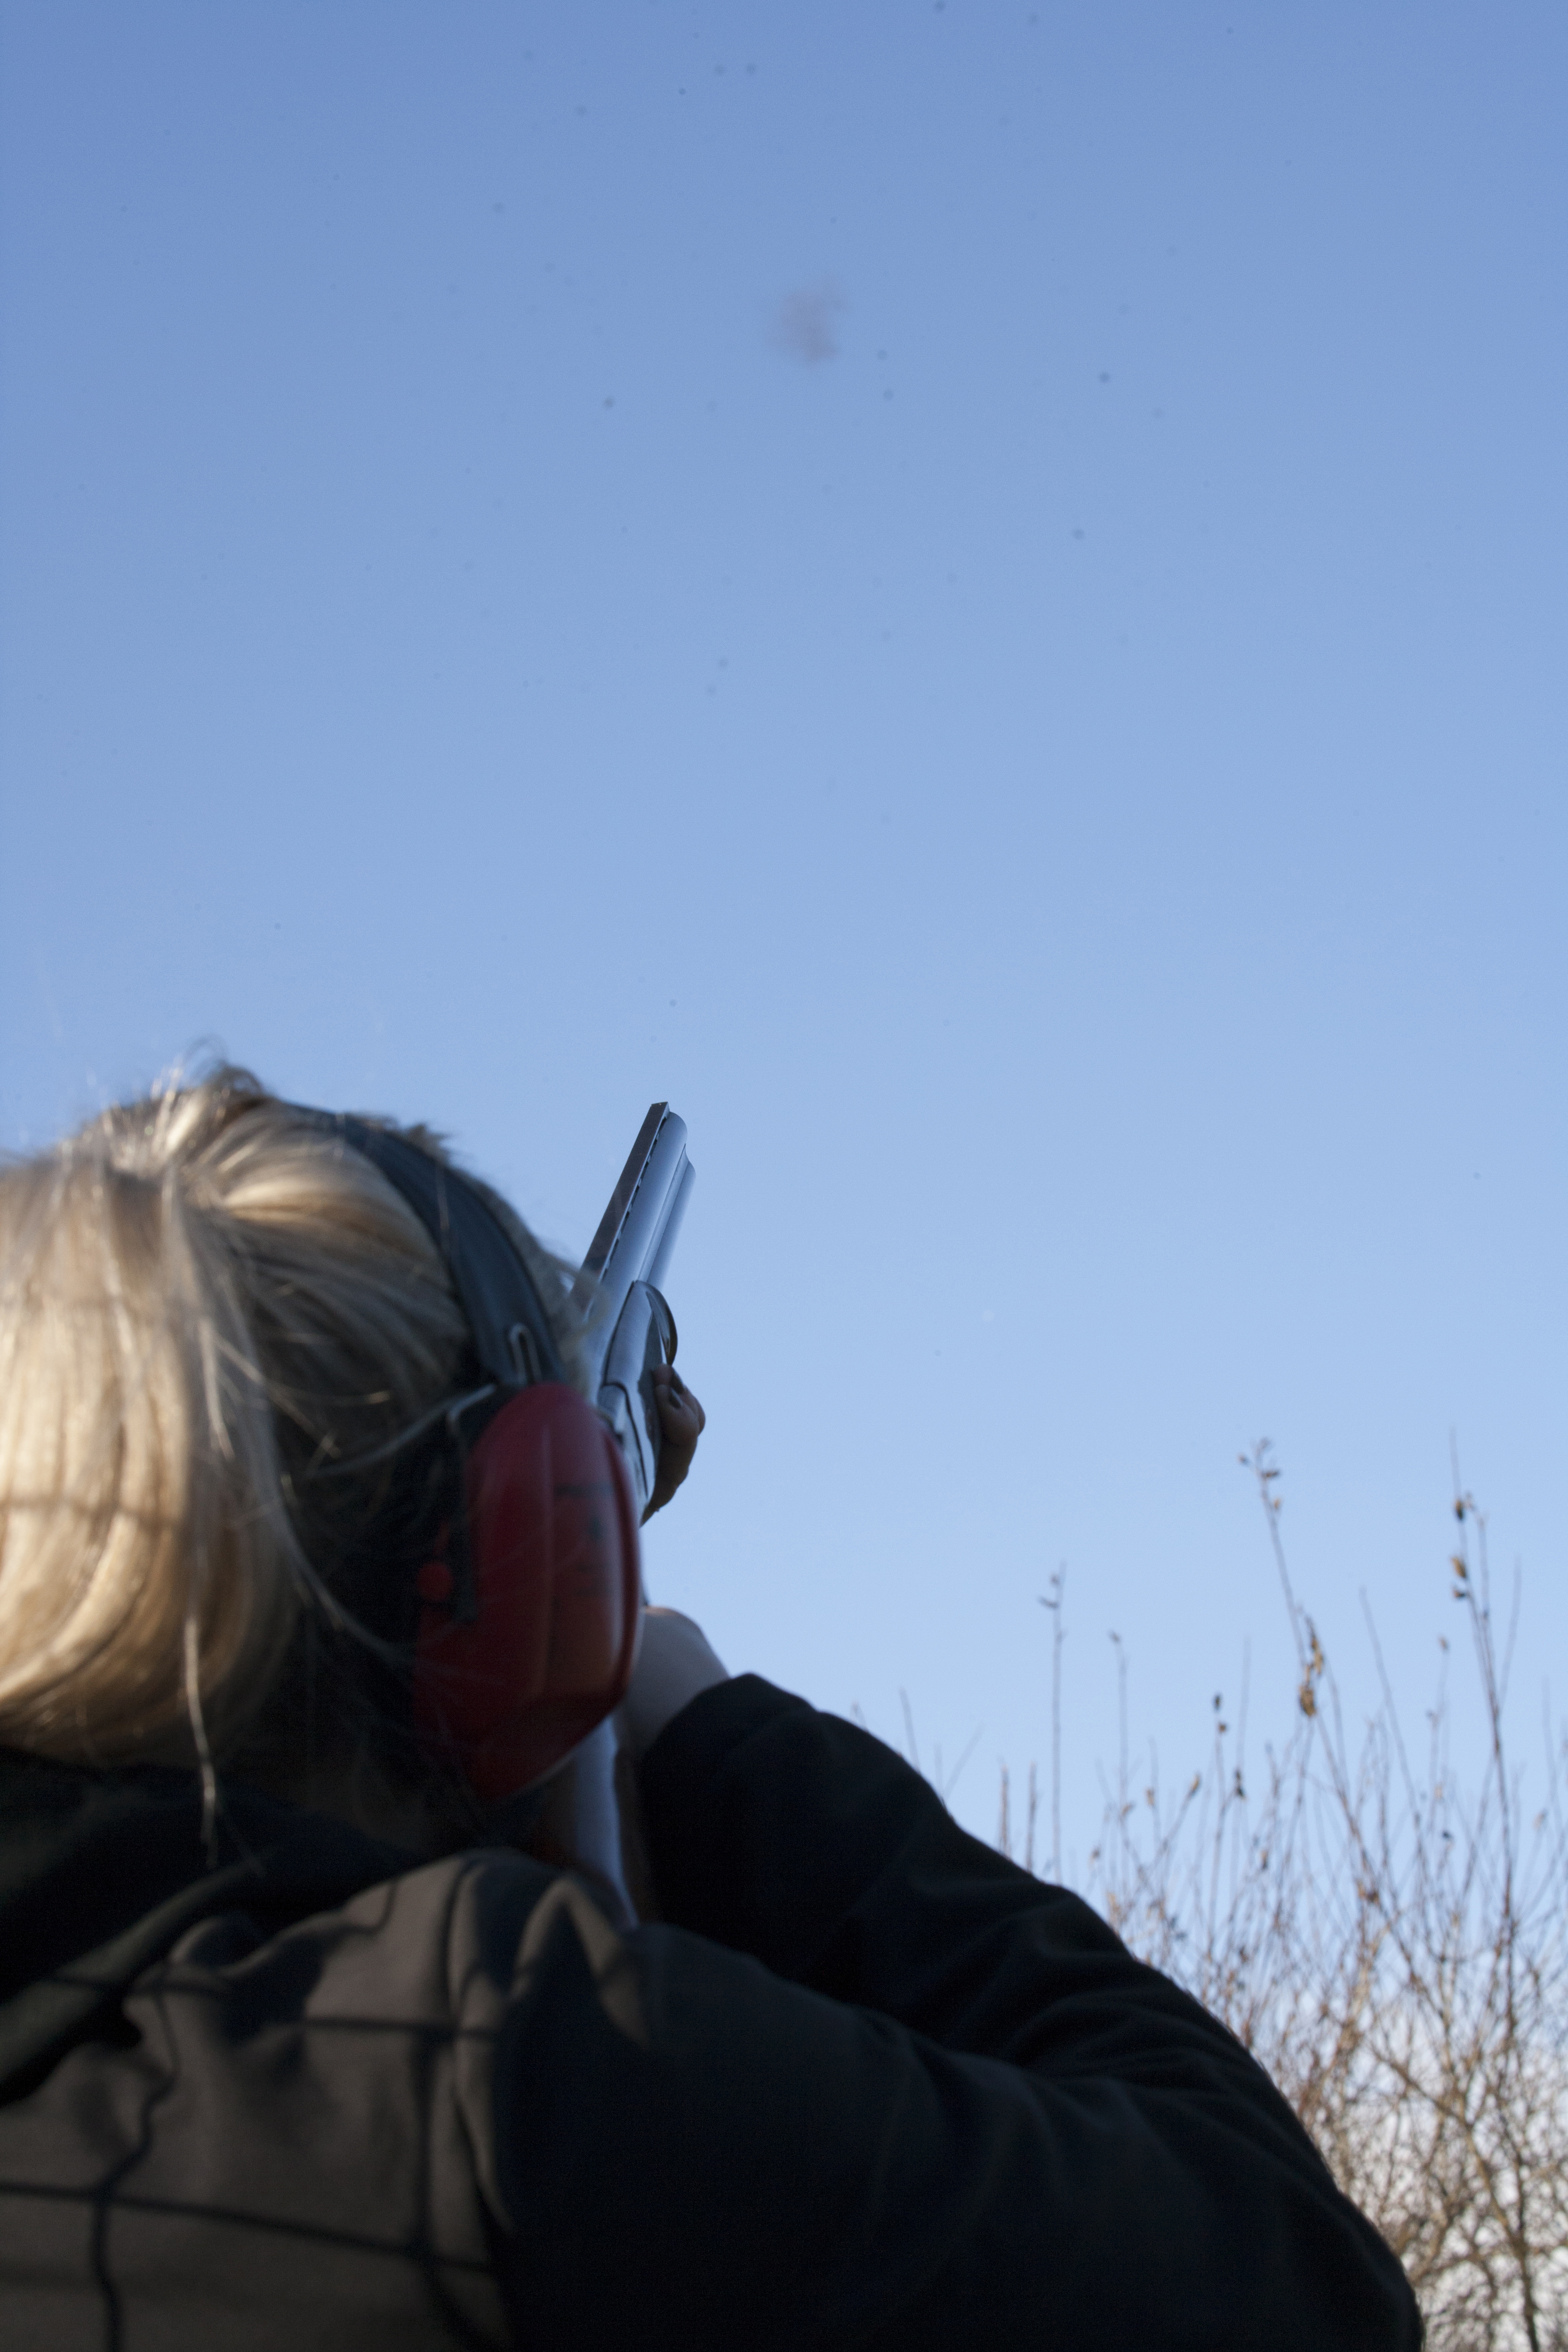 Guns for clayshooting - what would suit you best? Tips from